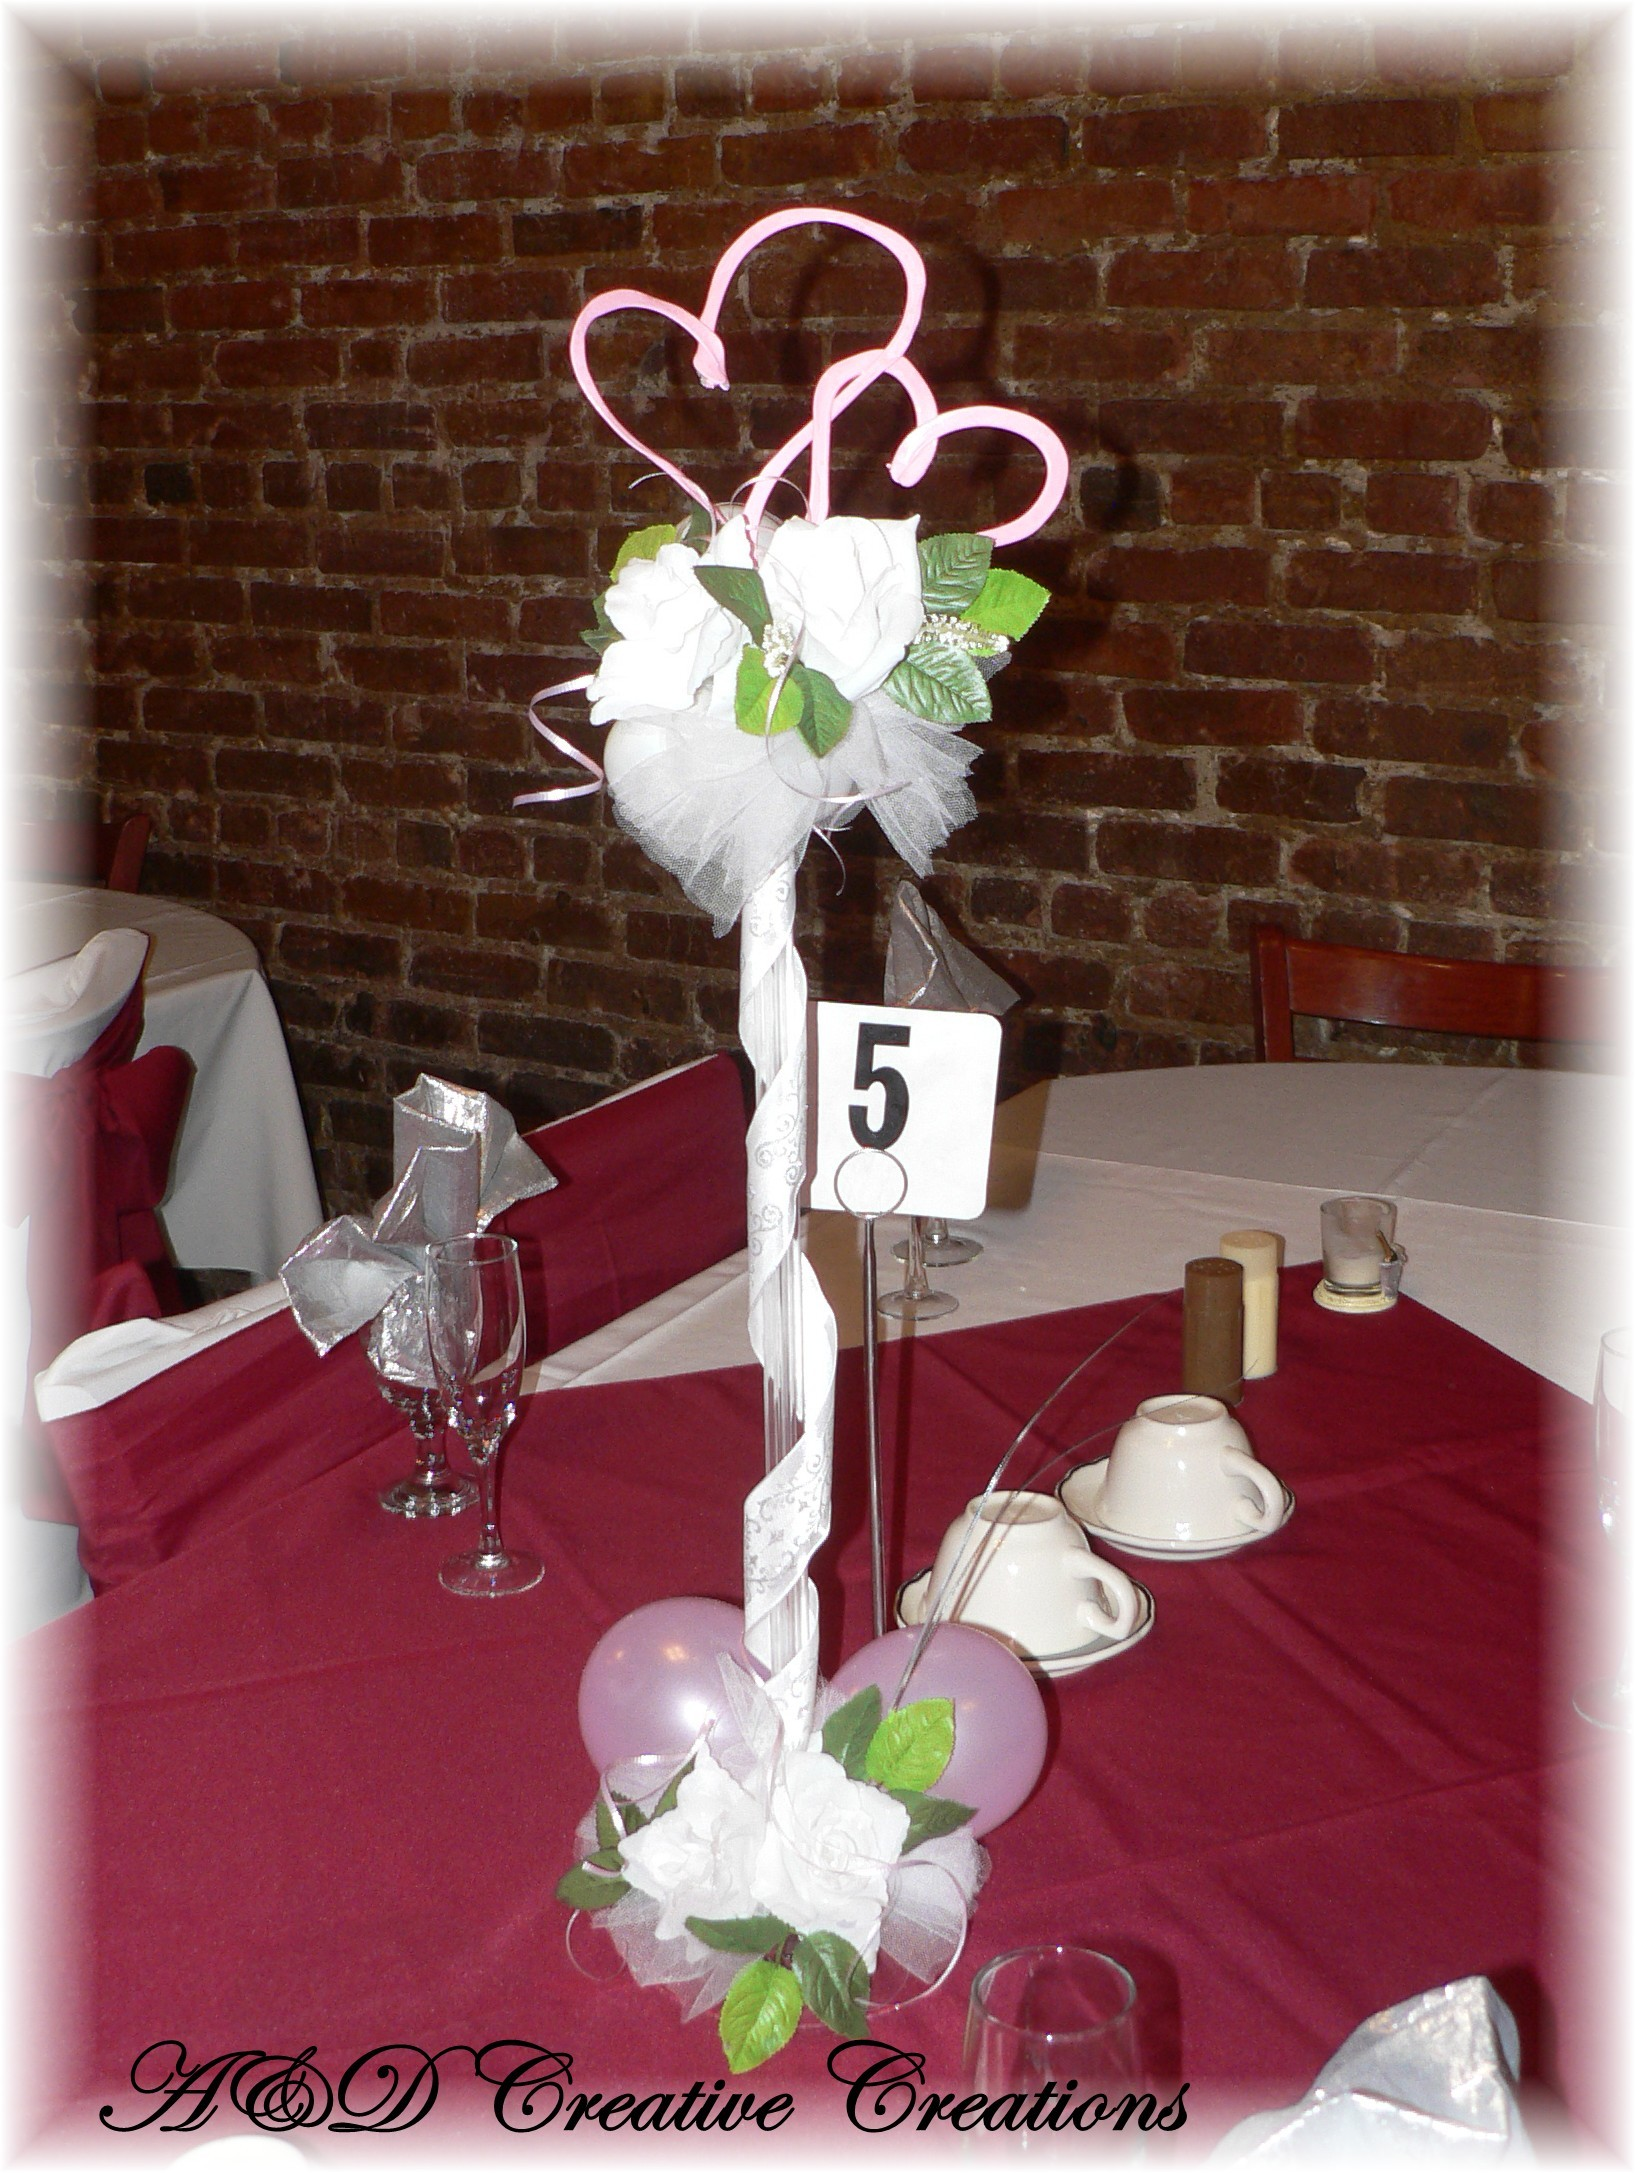 Flowers & Decor, Decor, Centerpiece, Table, Balloons, Ad creative creations